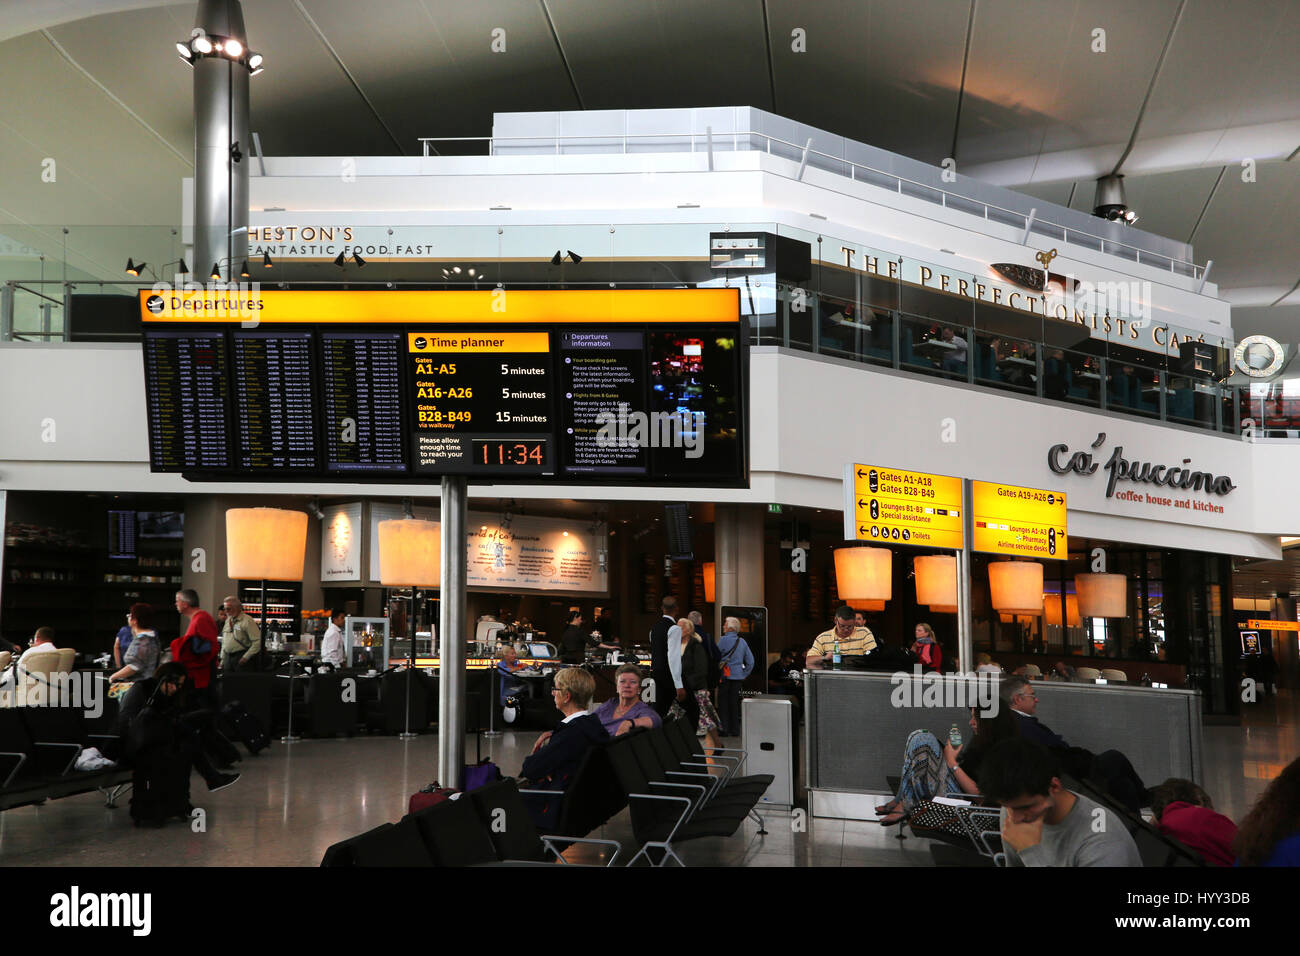 England Heathrow Airport Terminal Two Passengers Waiting In Departure Lounge And Restaurants - Stock Image